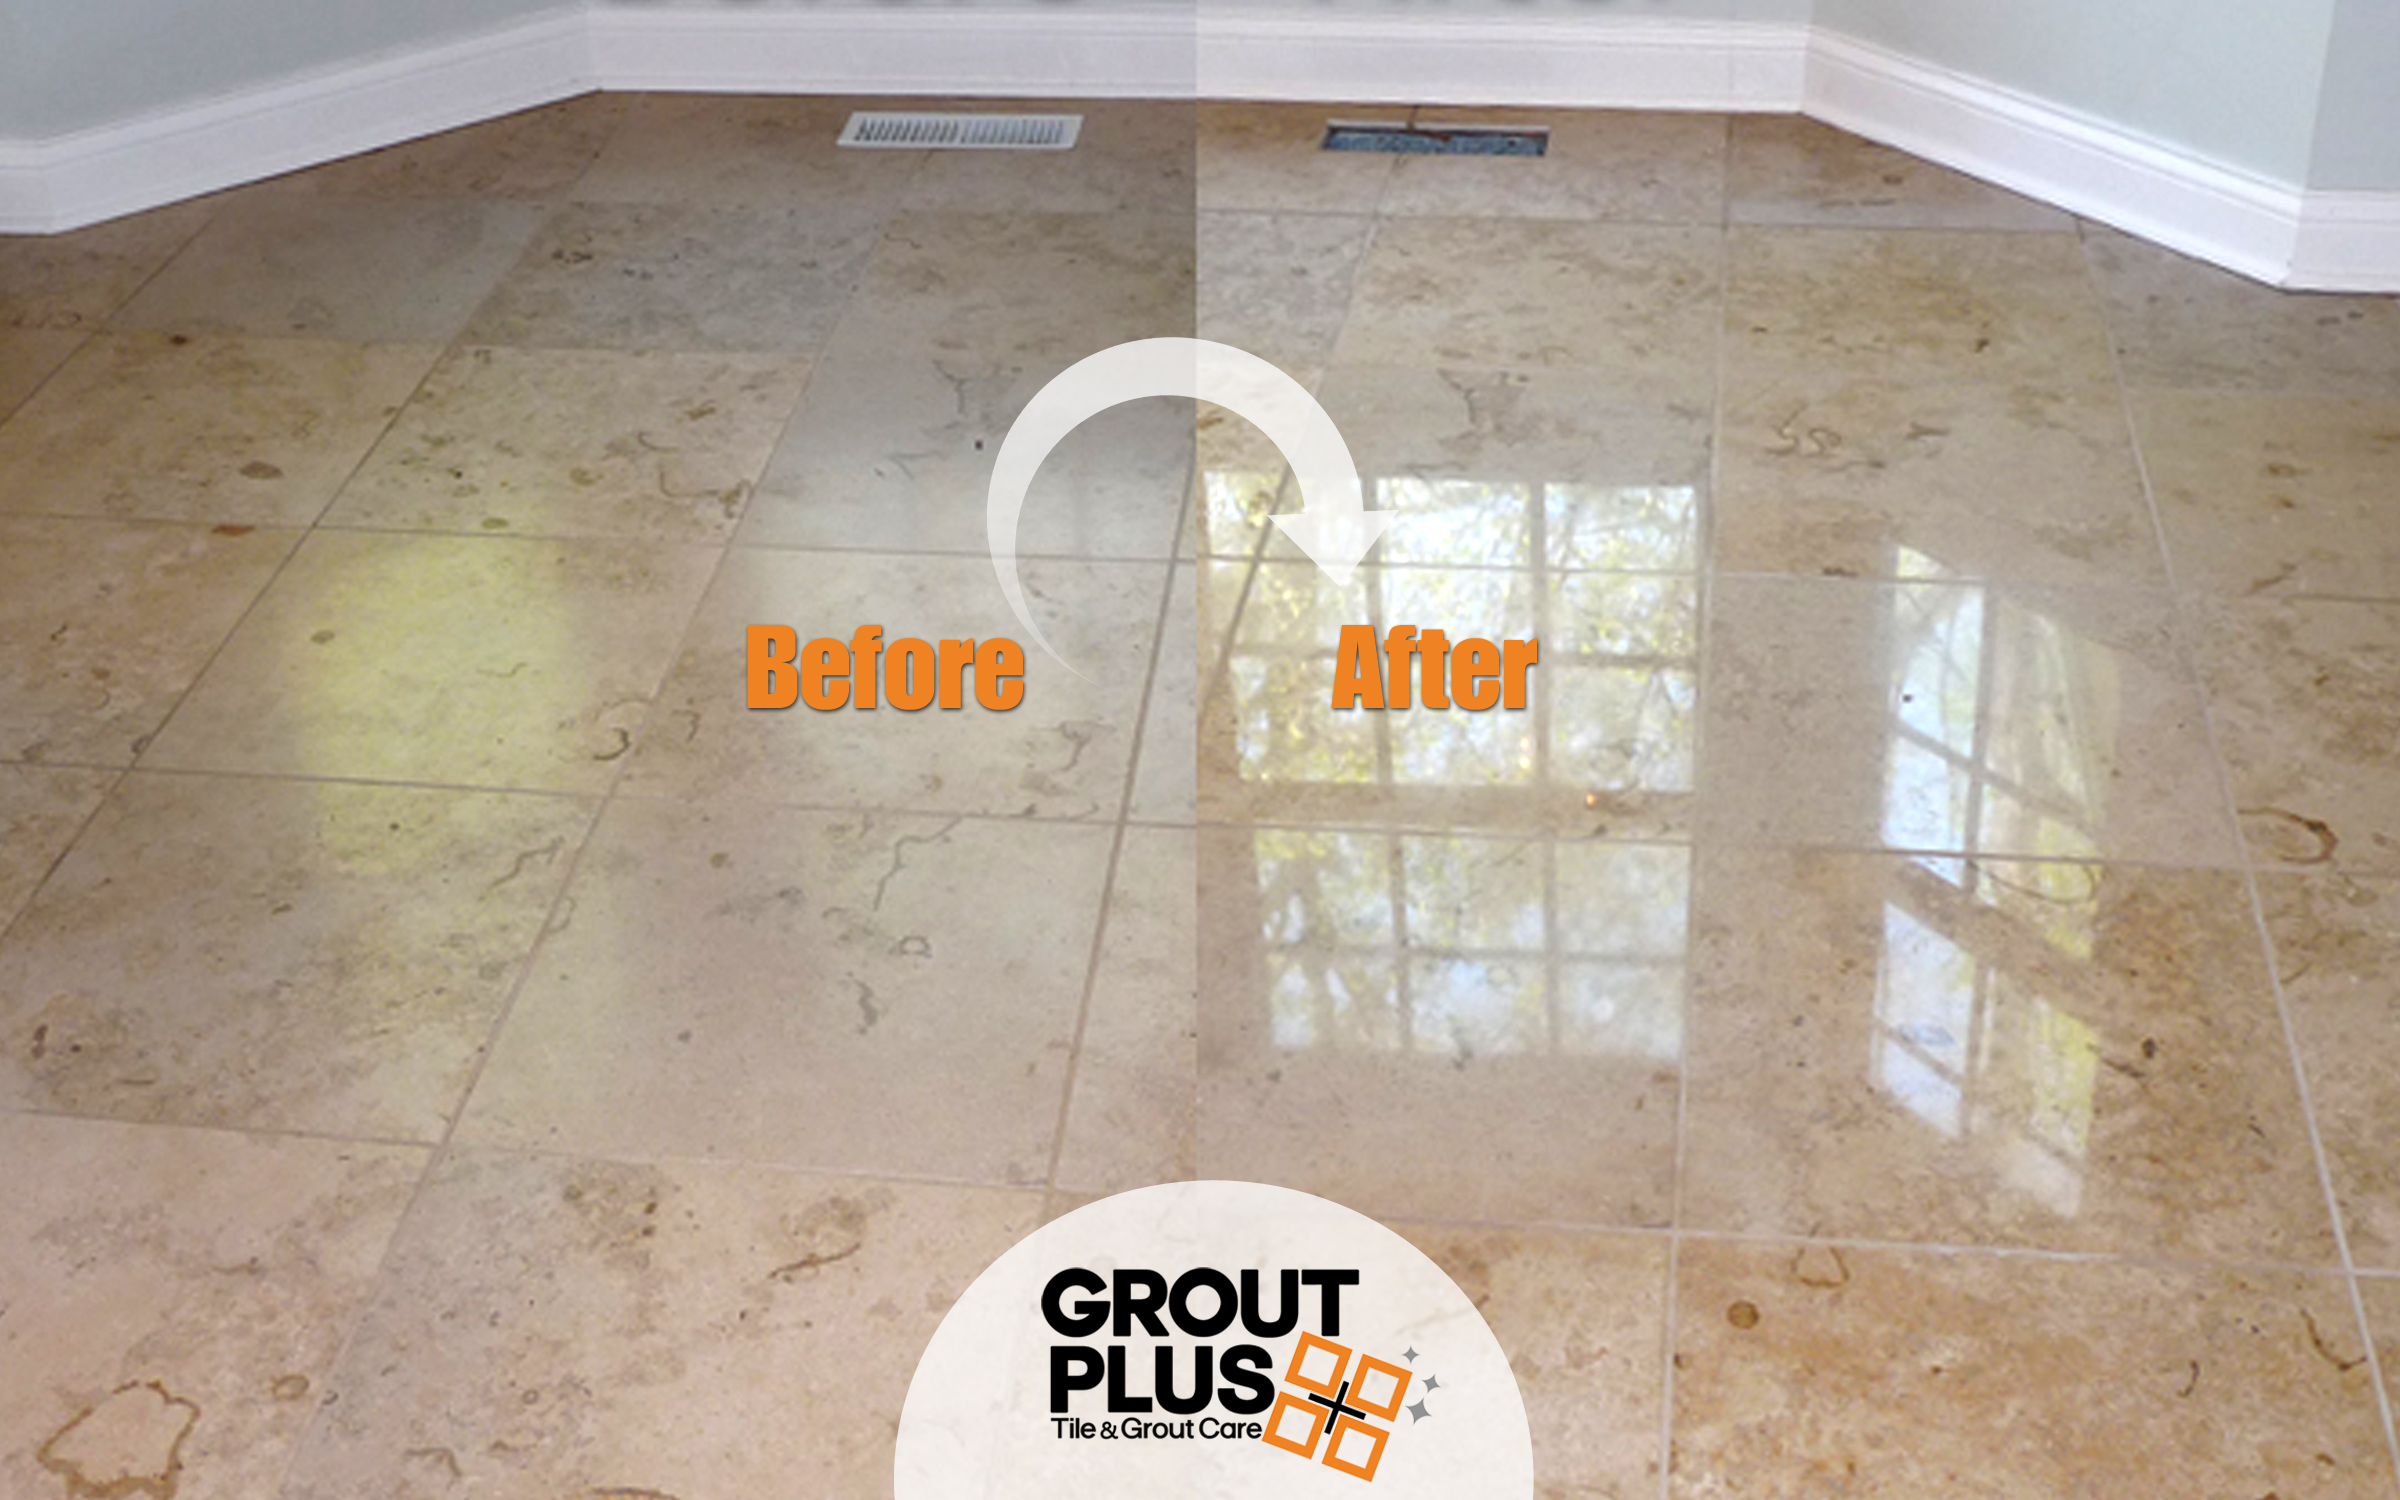 Grout Plus Before After Tile Grout8.jpg